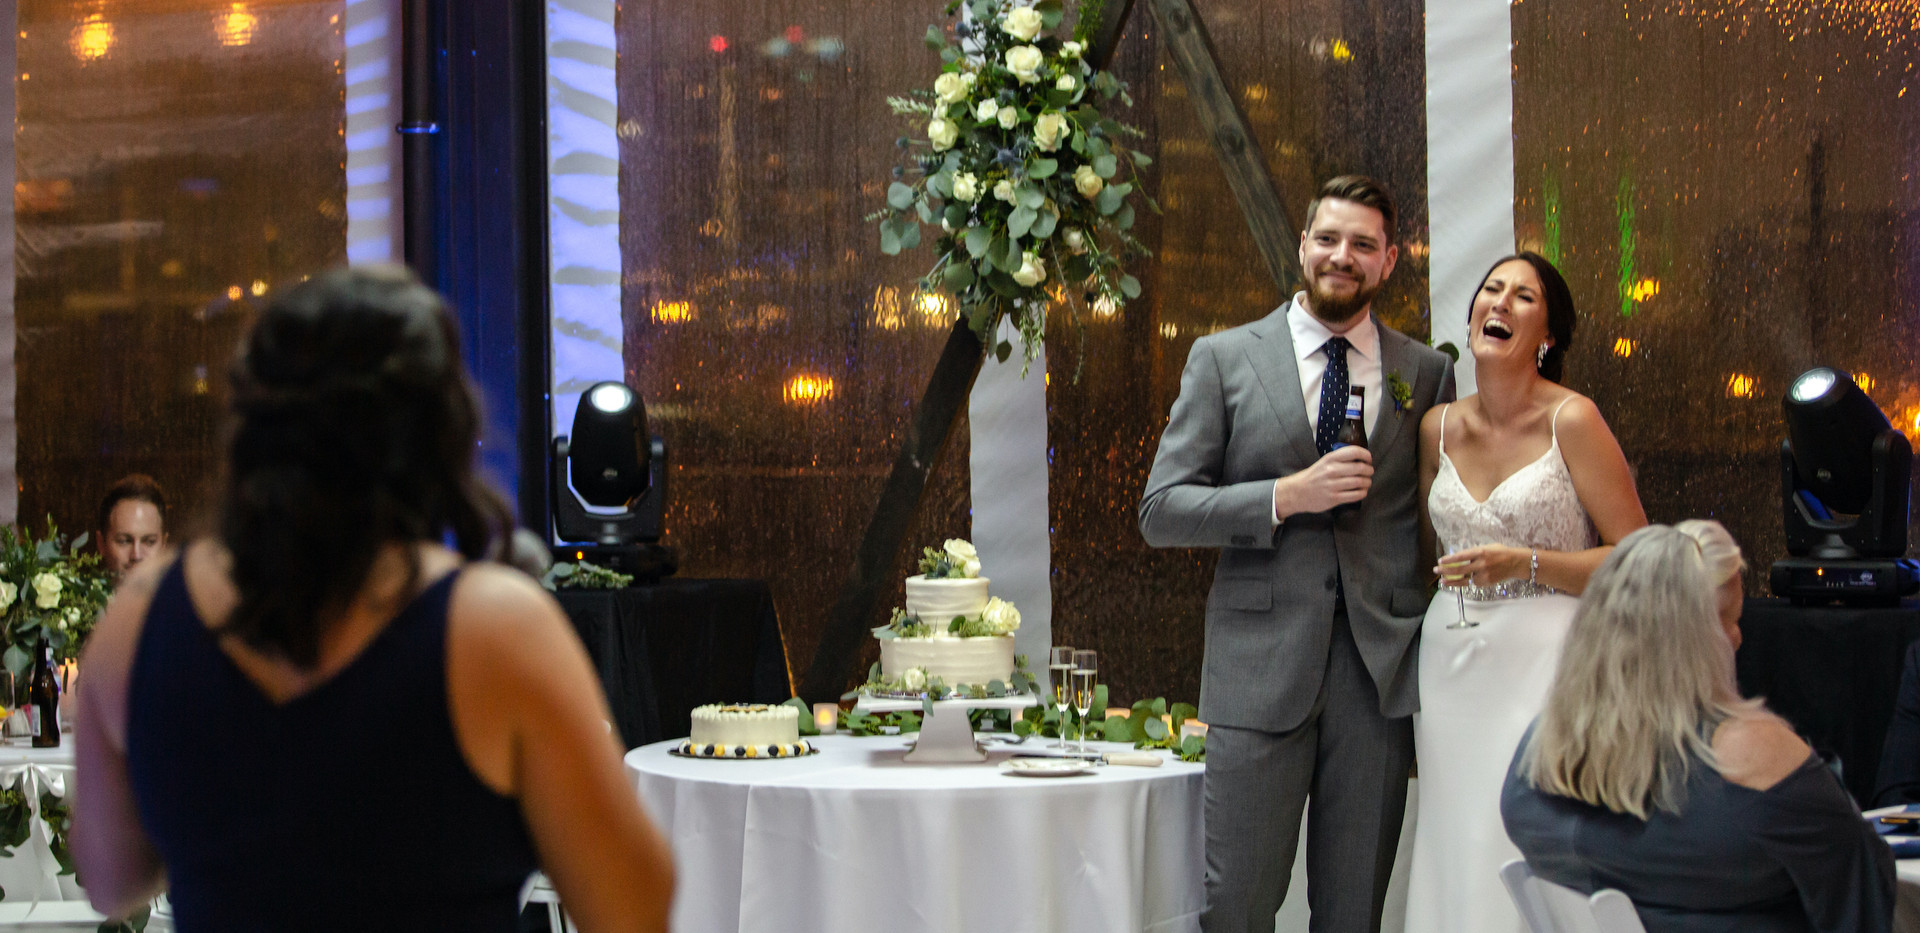 Speech for Bride and Groom